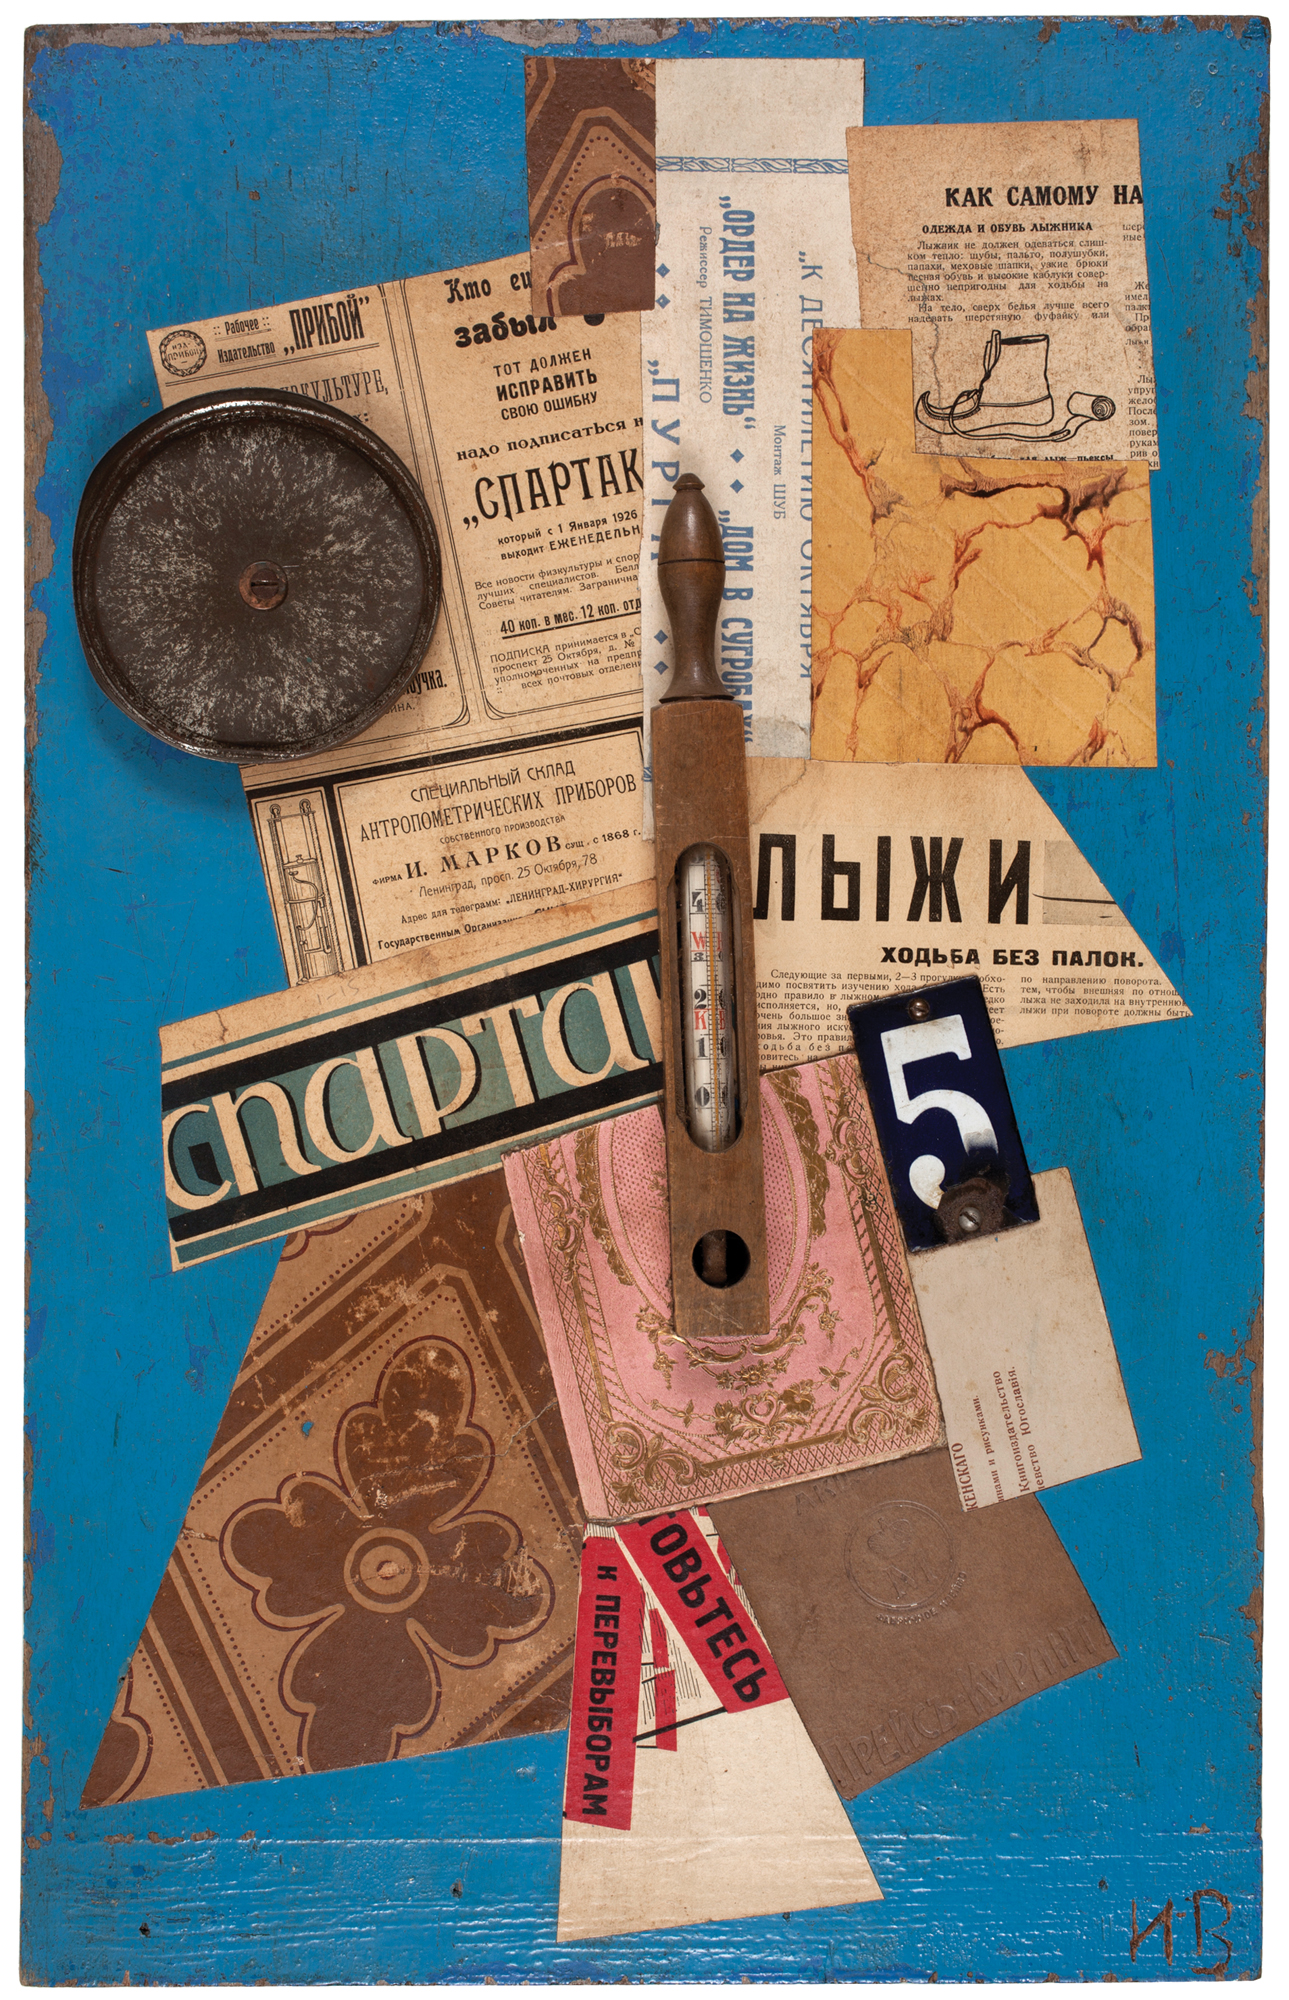 Unattributed. Signed, I.V. in Russian, lower right front.Mixed media on plywood. 50 x 35 cm.